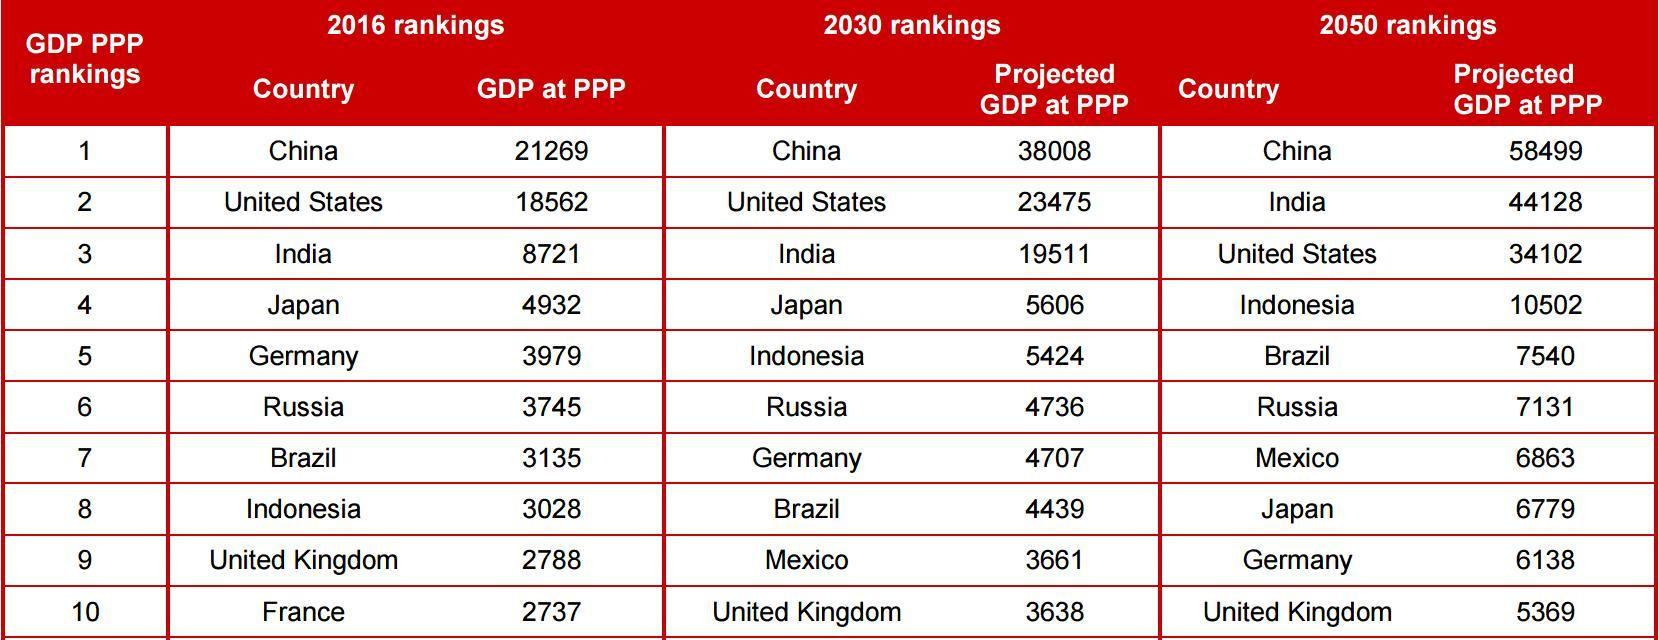 Projected gdp at ppps of the world s major economies by 2050 pwc - Untitled